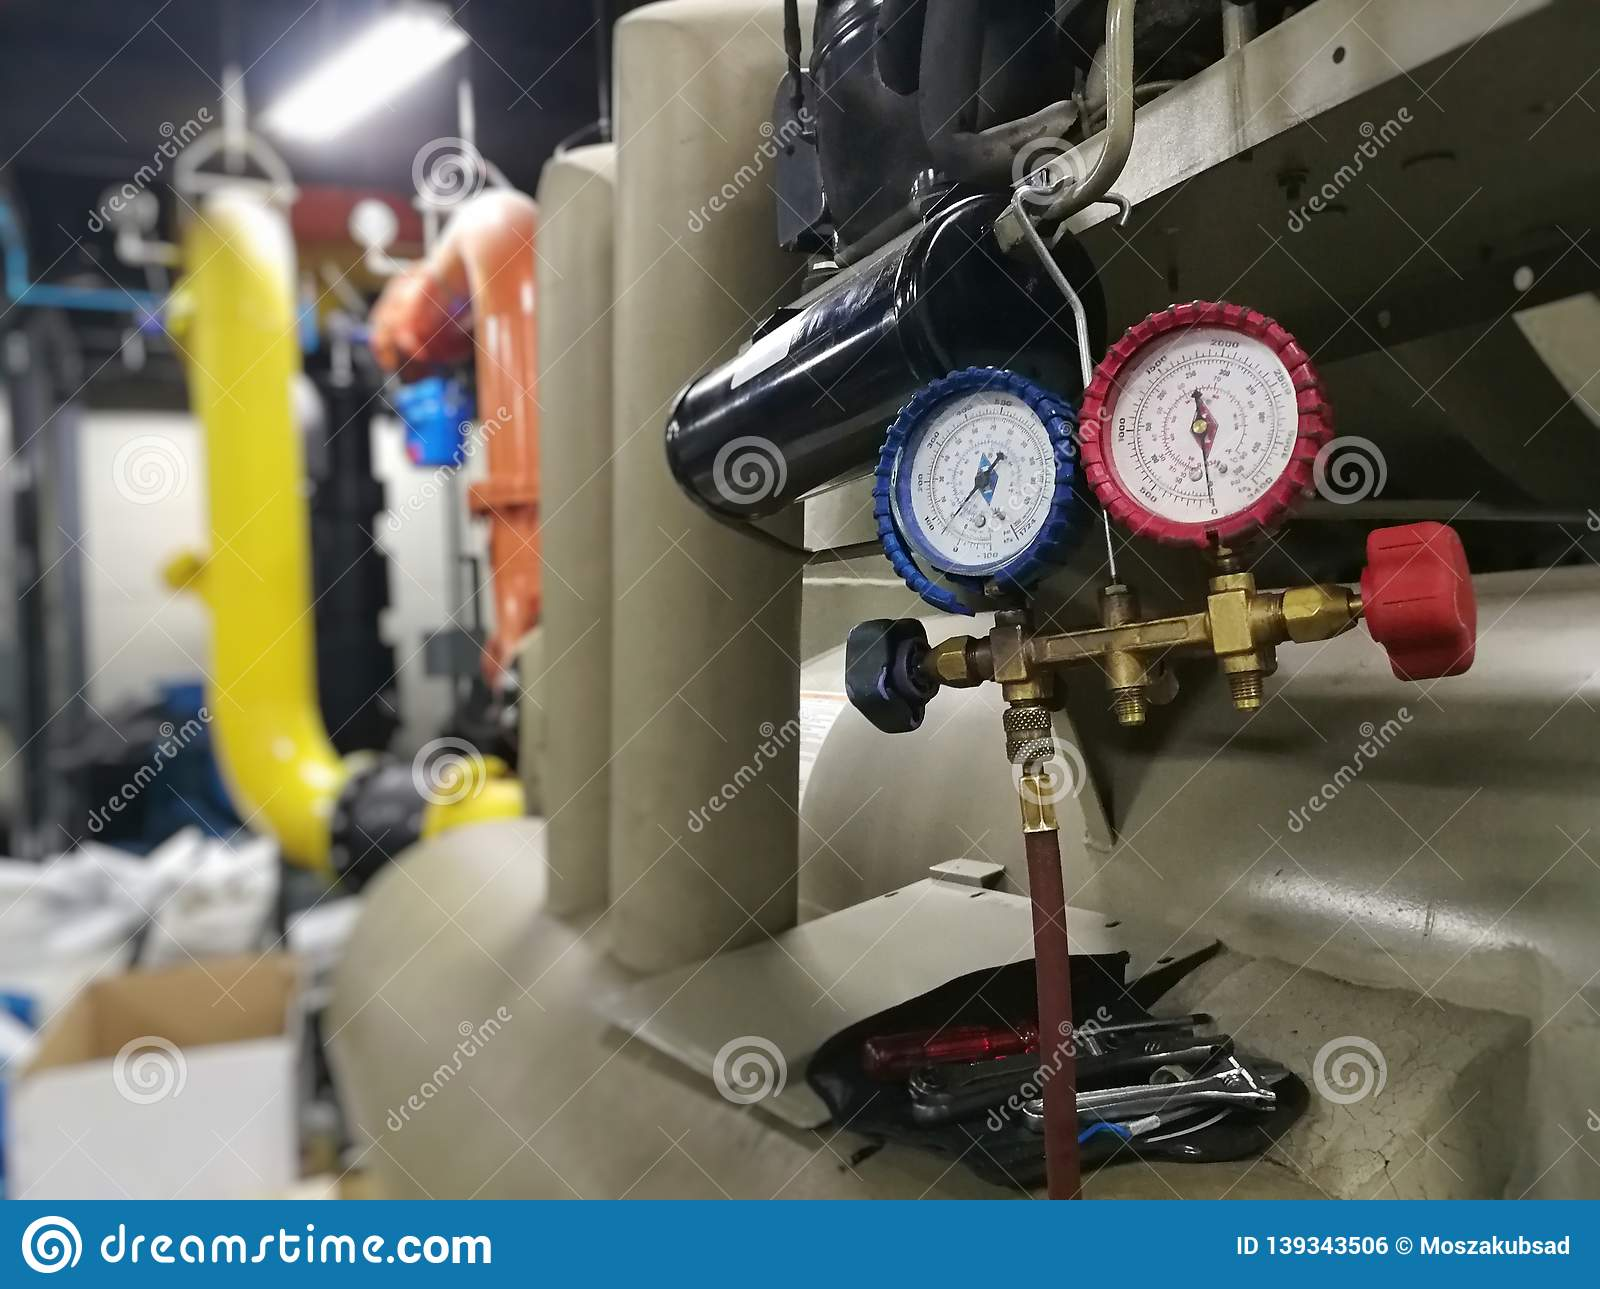 how to check for ac leaks